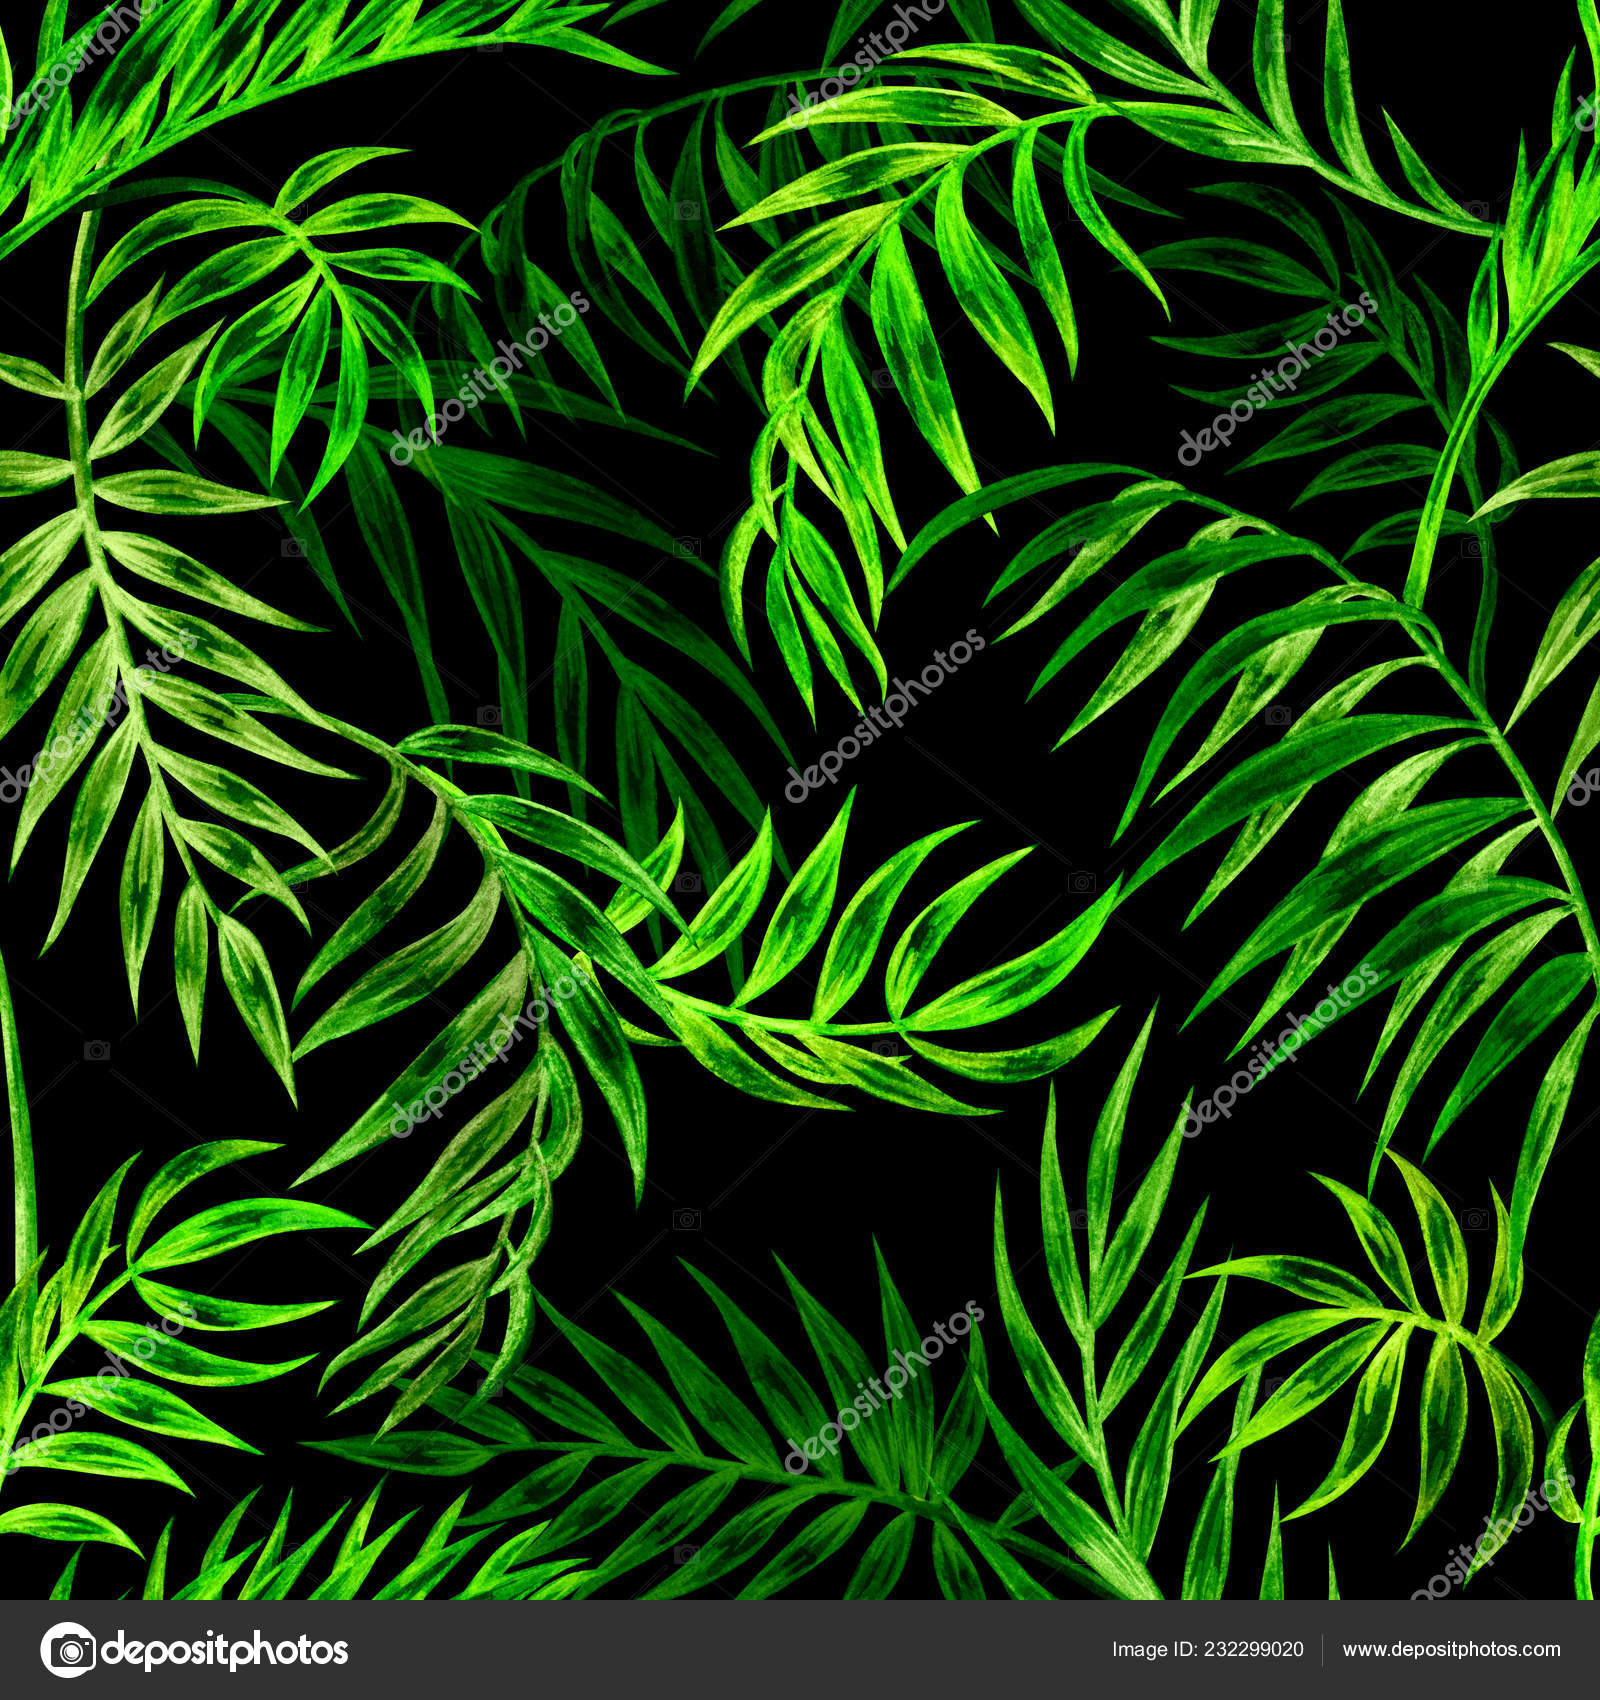 Seamless Pattern Green Palm Leaves Black Background Watercolor Illustration Tropical Stock Photo C Ollga P 09 232299020 Tropical leaves of monstera, watercolor painting. https depositphotos com 232299020 stock photo seamless pattern green palm leaves html